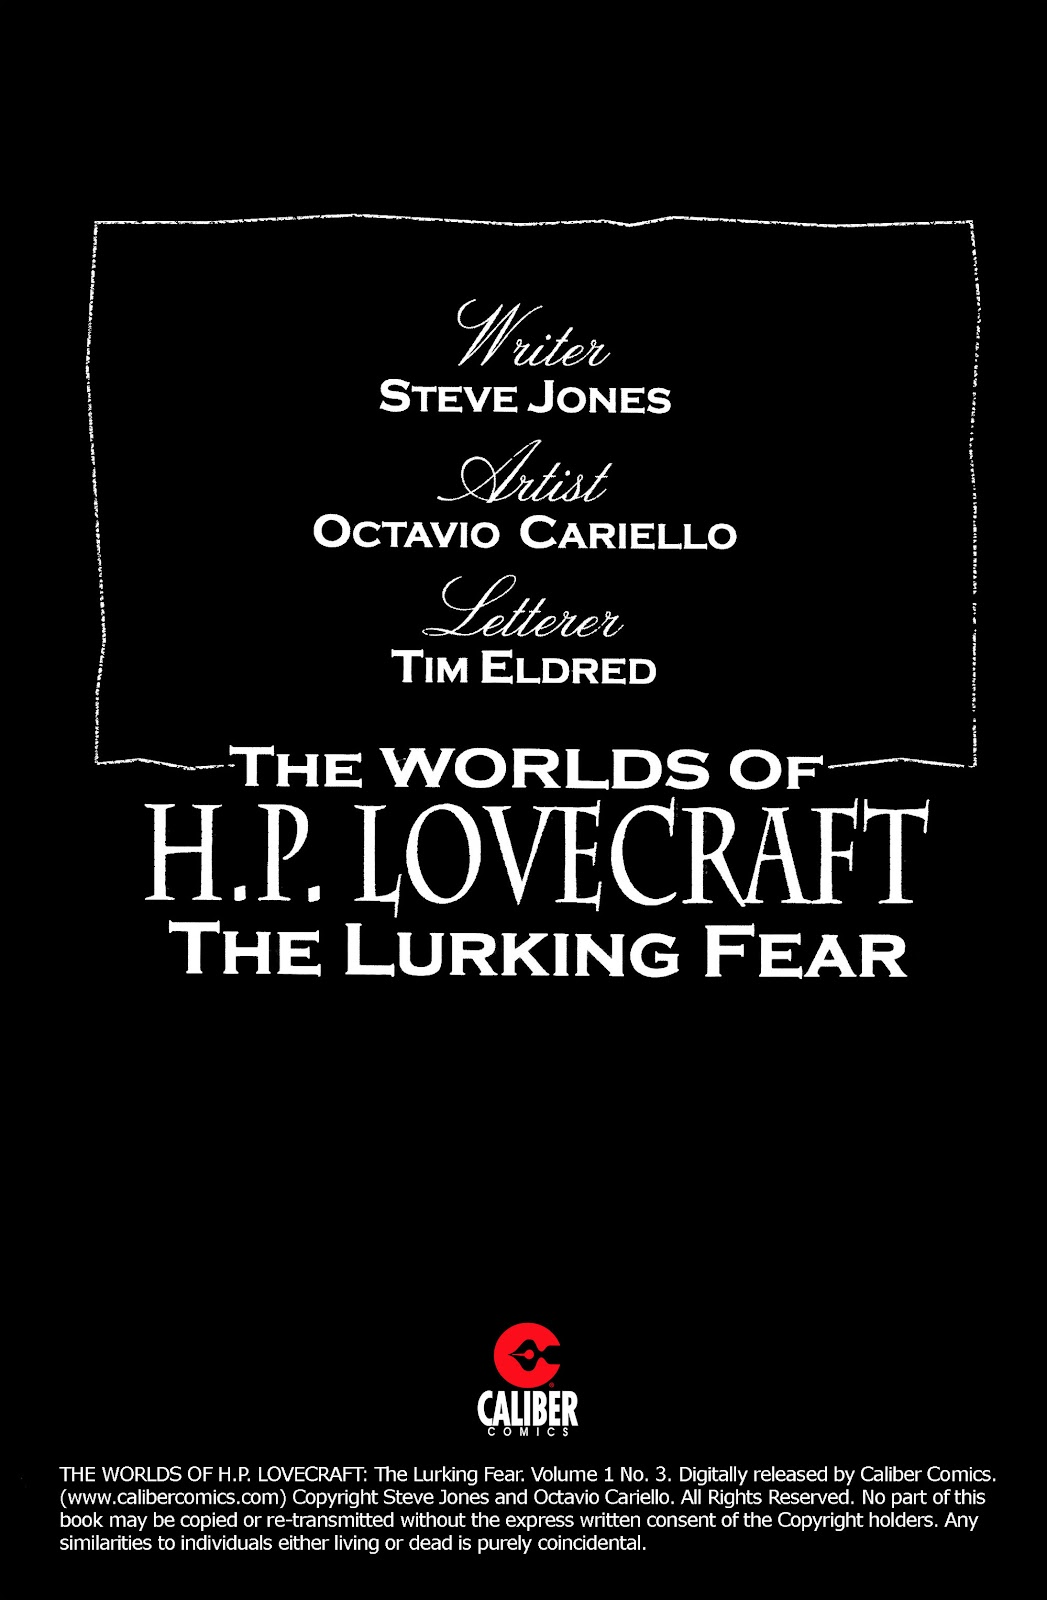 Worlds of H.P. Lovecraft Issue_The_Lurking_Fear Page 2